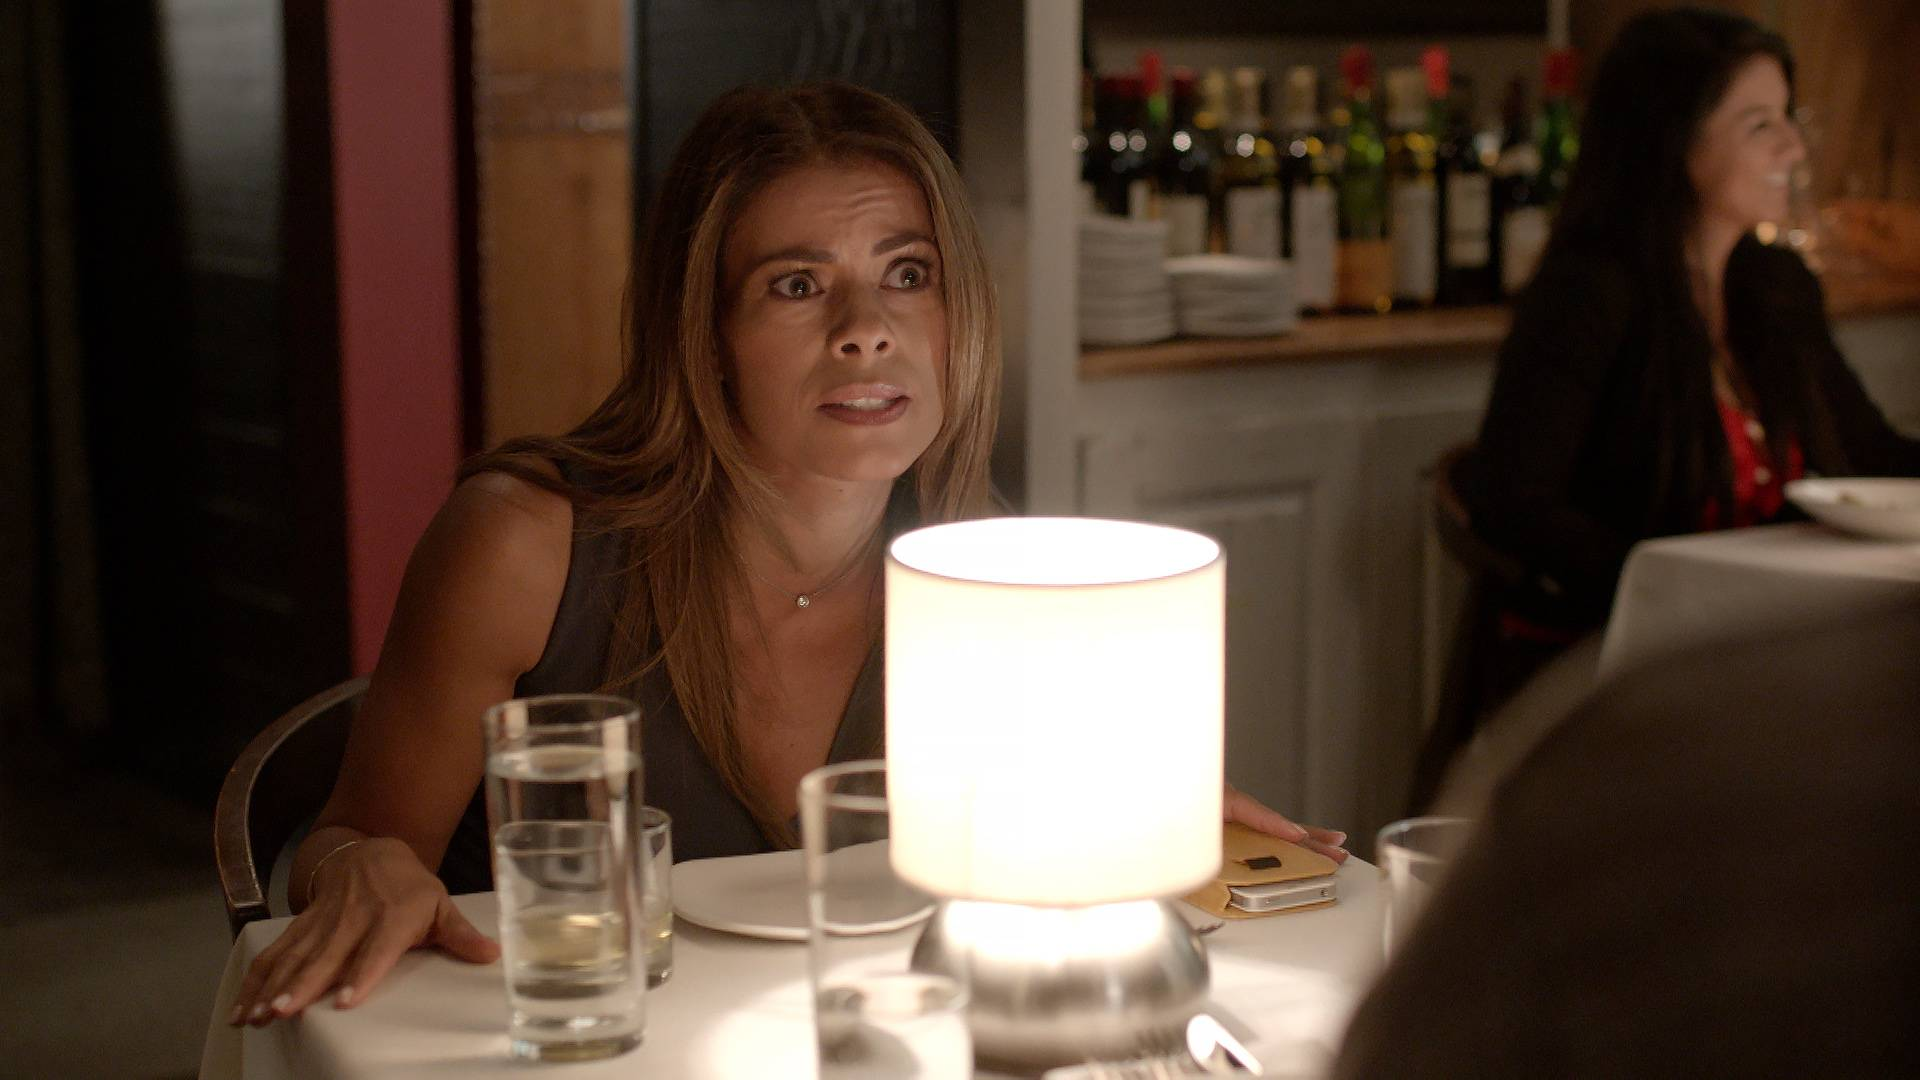 Kara Gives Gael a Chance - Kara plays hardball when it comes to everything, so this date didn't go so smooth.   (Photo: BET)